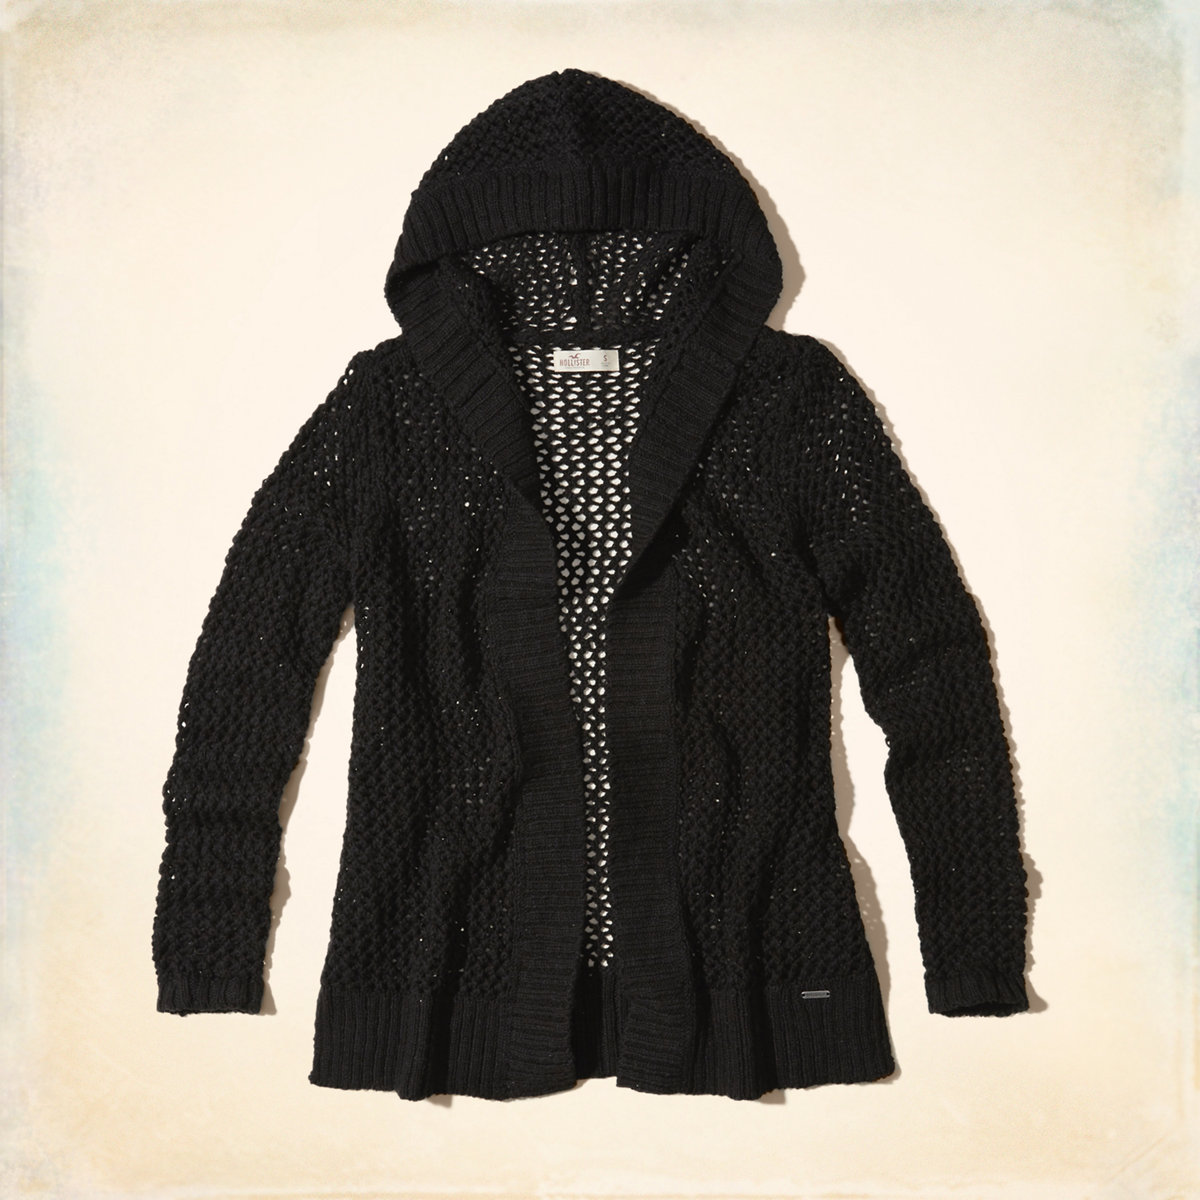 Non-Closure Hooded Cardigan